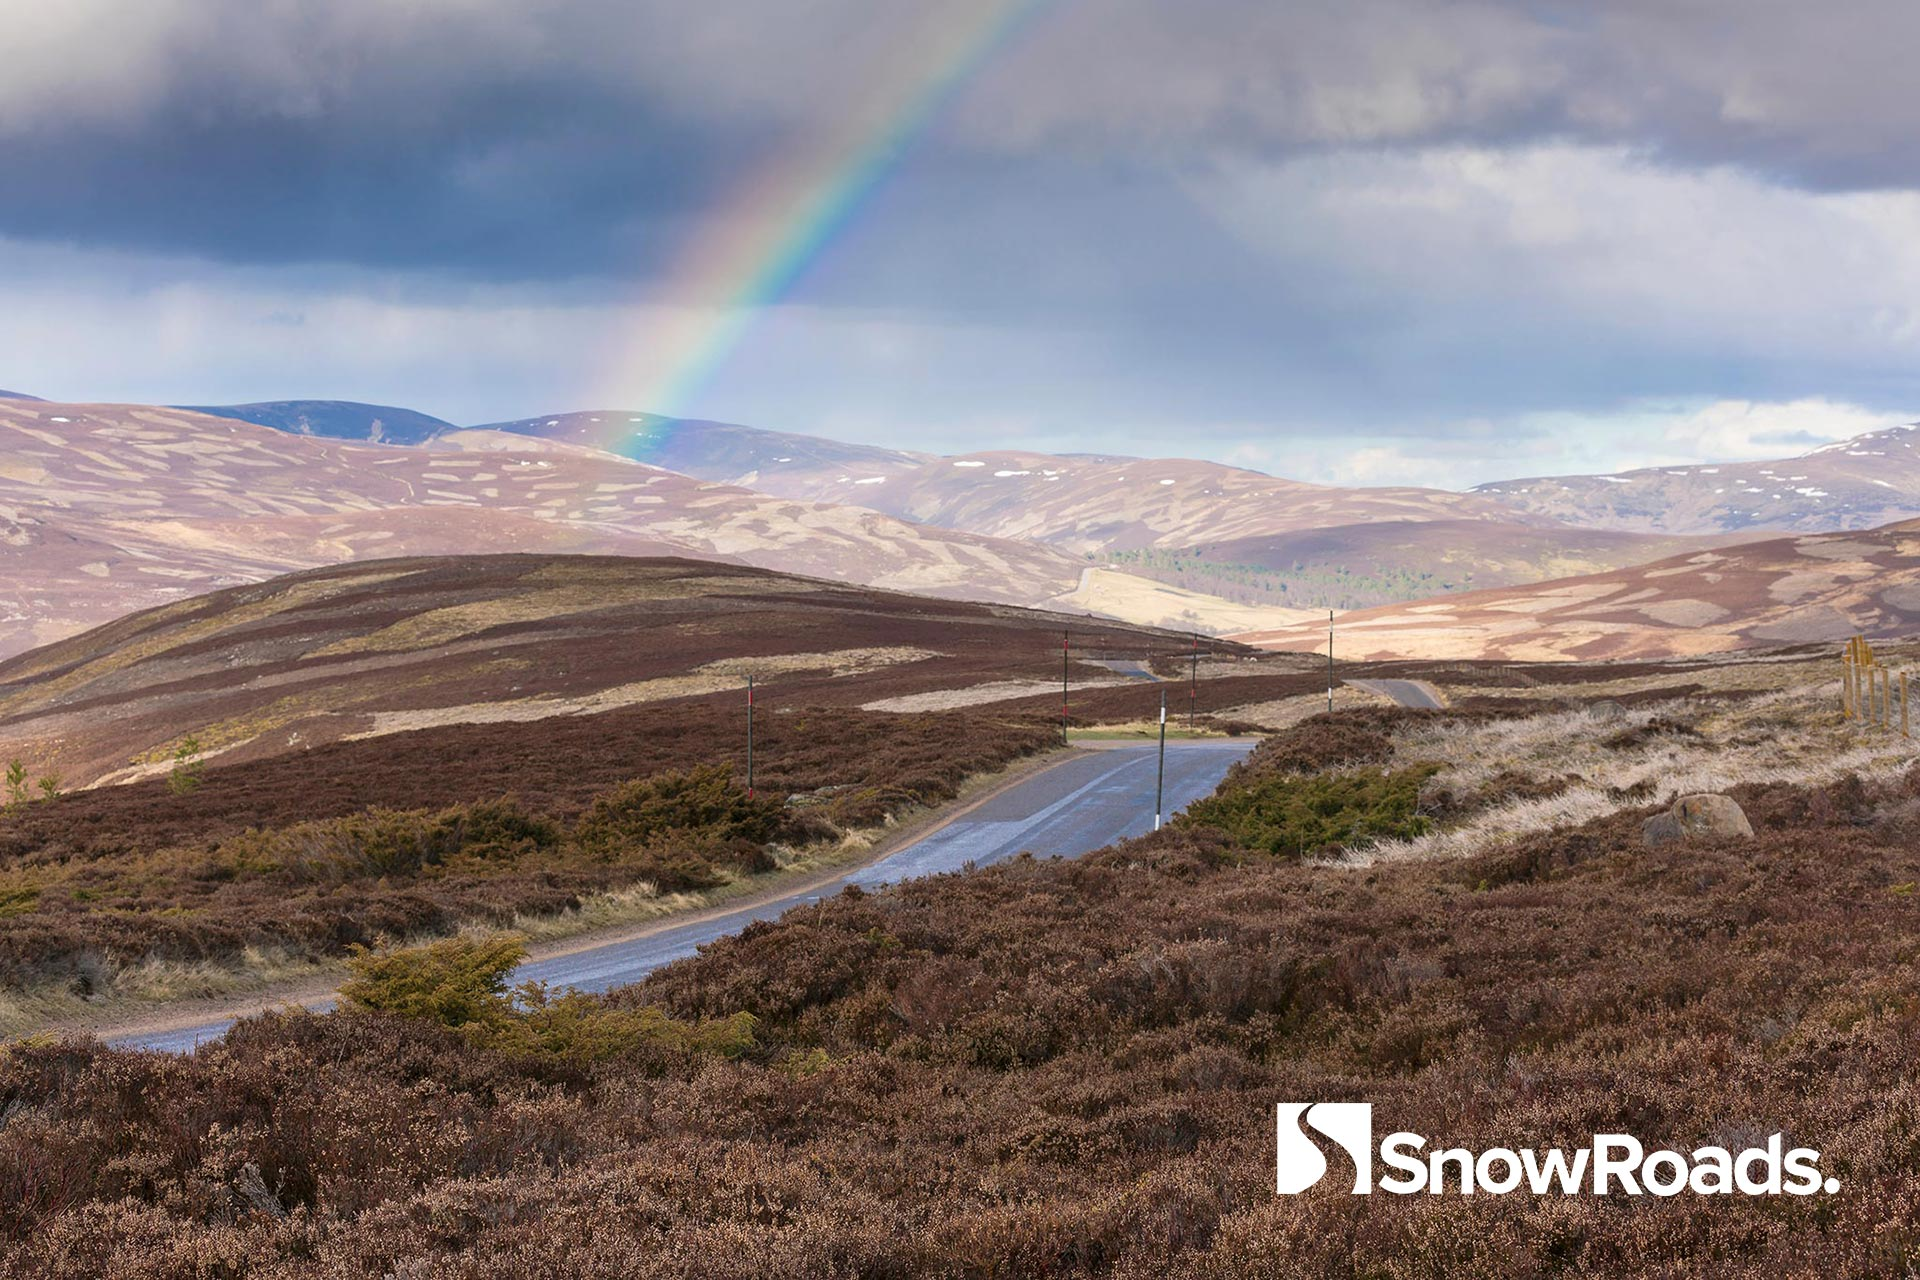 The road from Corgarff to Crathie in the Cairngorms National Park